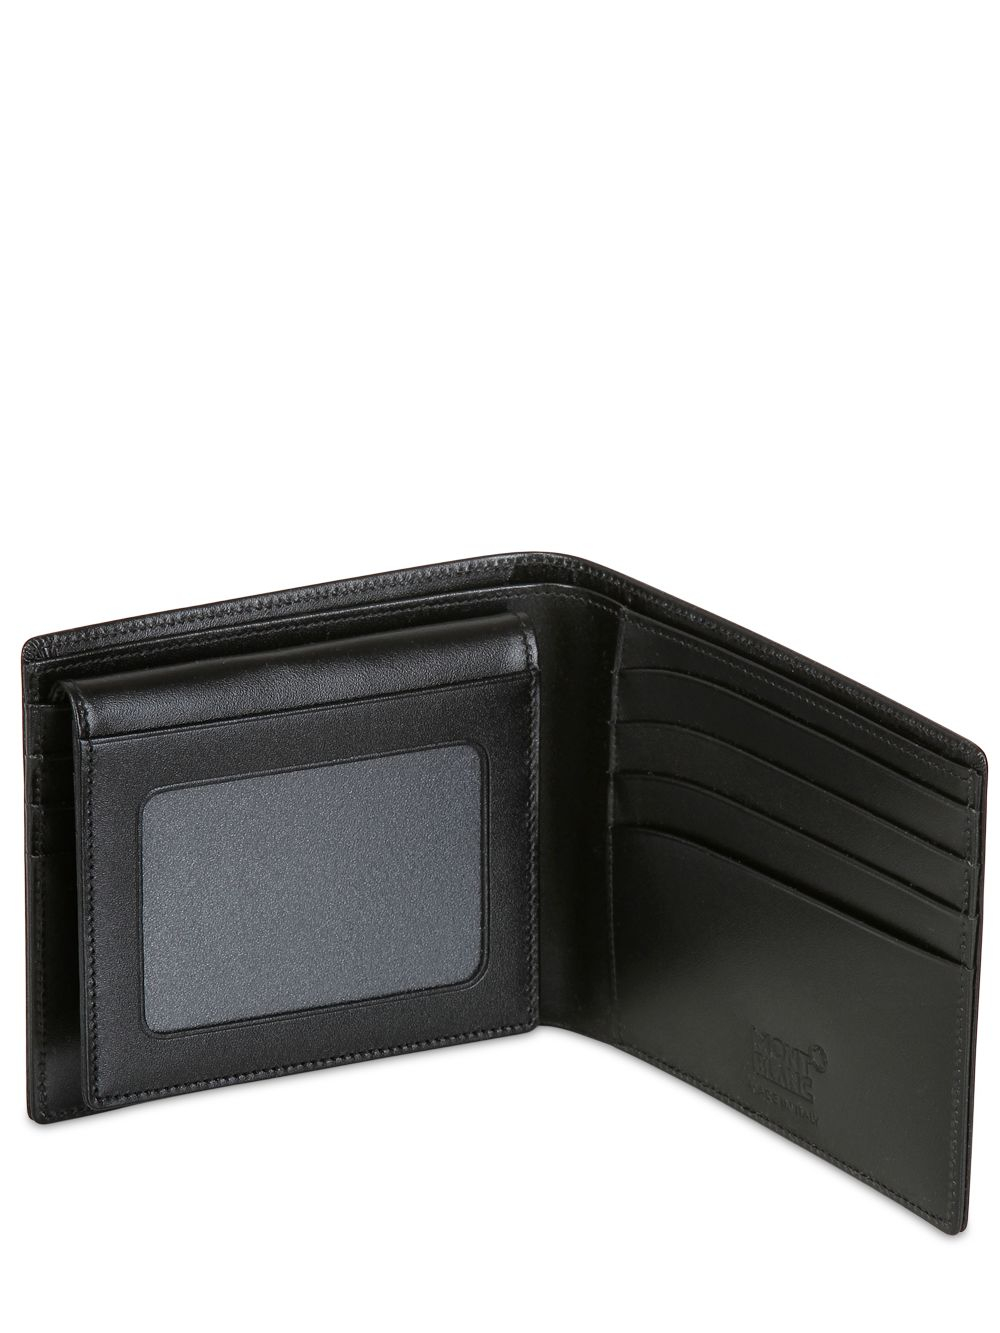 Montblanc Meisterstuck 11cc Leather Wallet In Black For